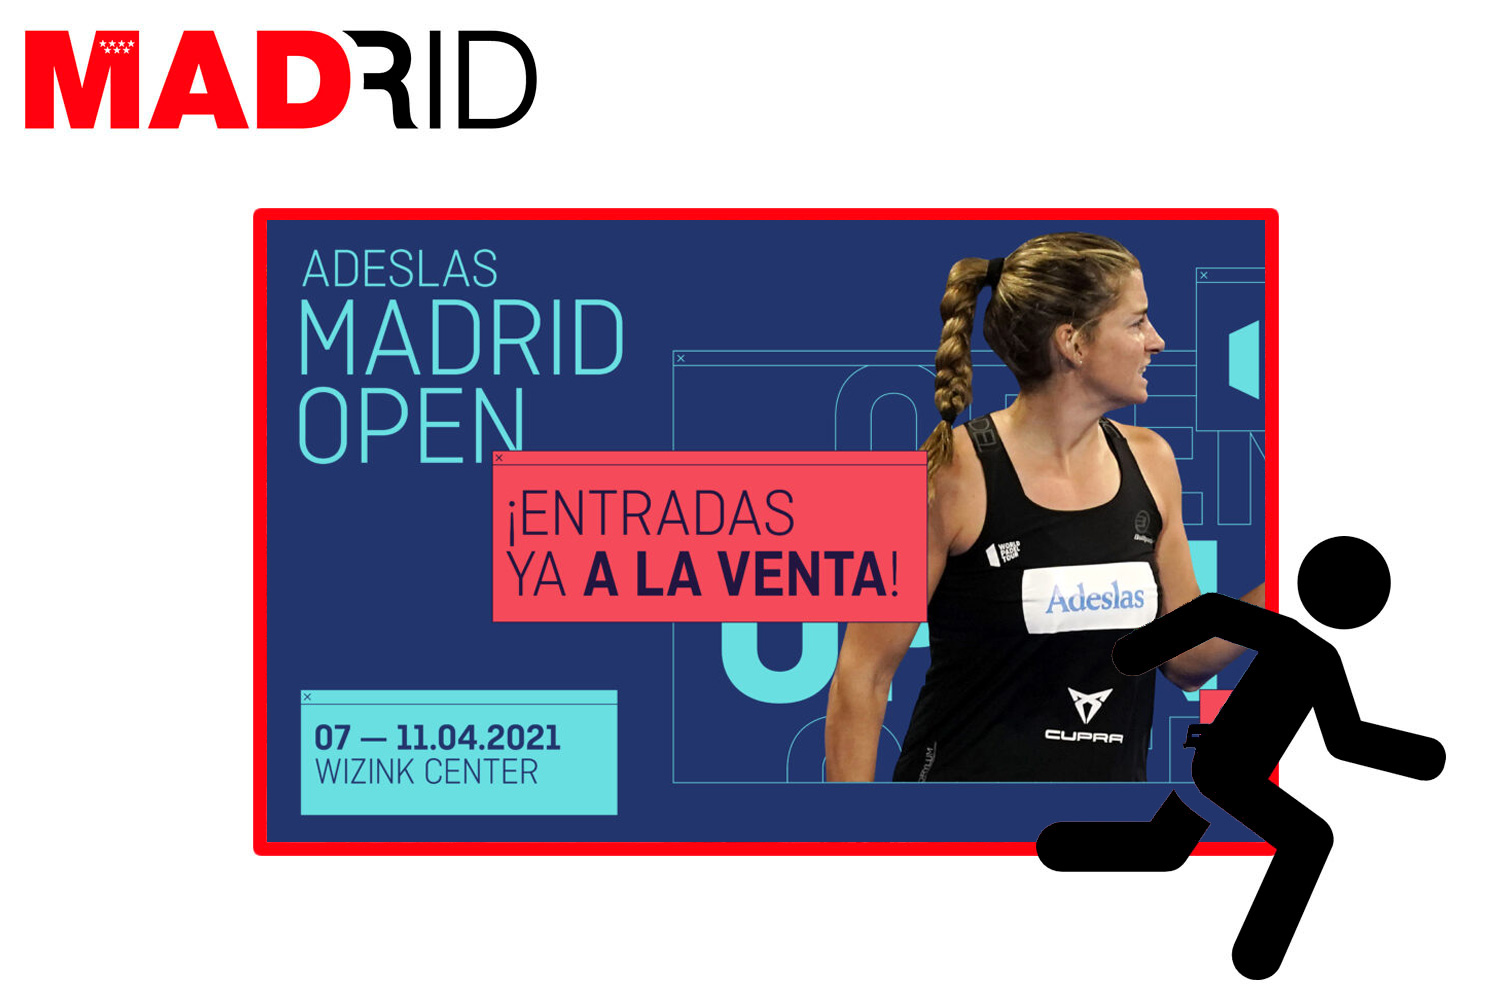 Adeslas Madrid Open